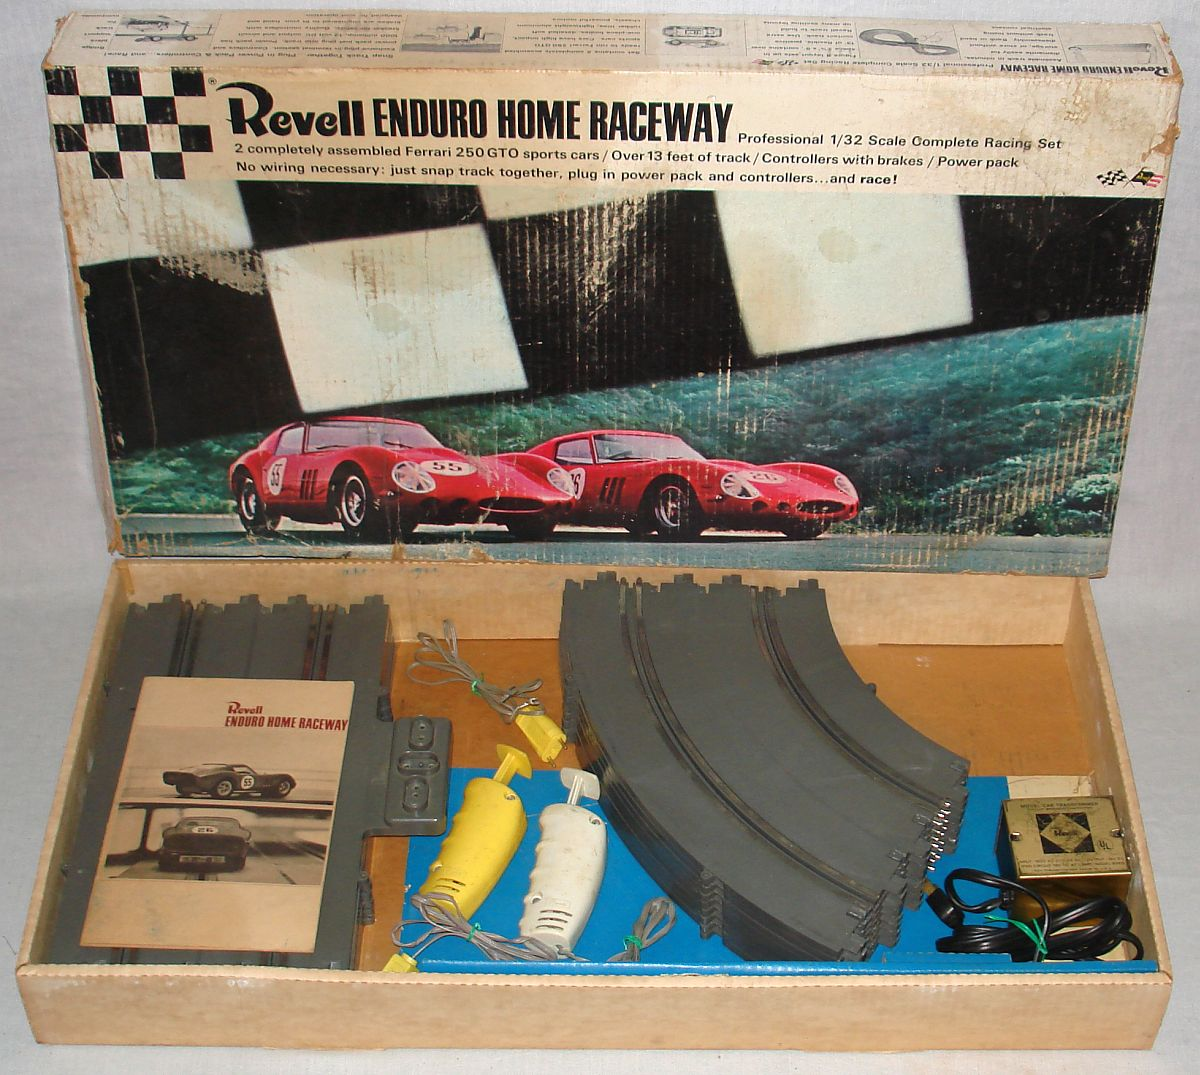 Revell Home Raceway 1:32 Scale Slot Car Racing Enduro Track Set R3001:3000